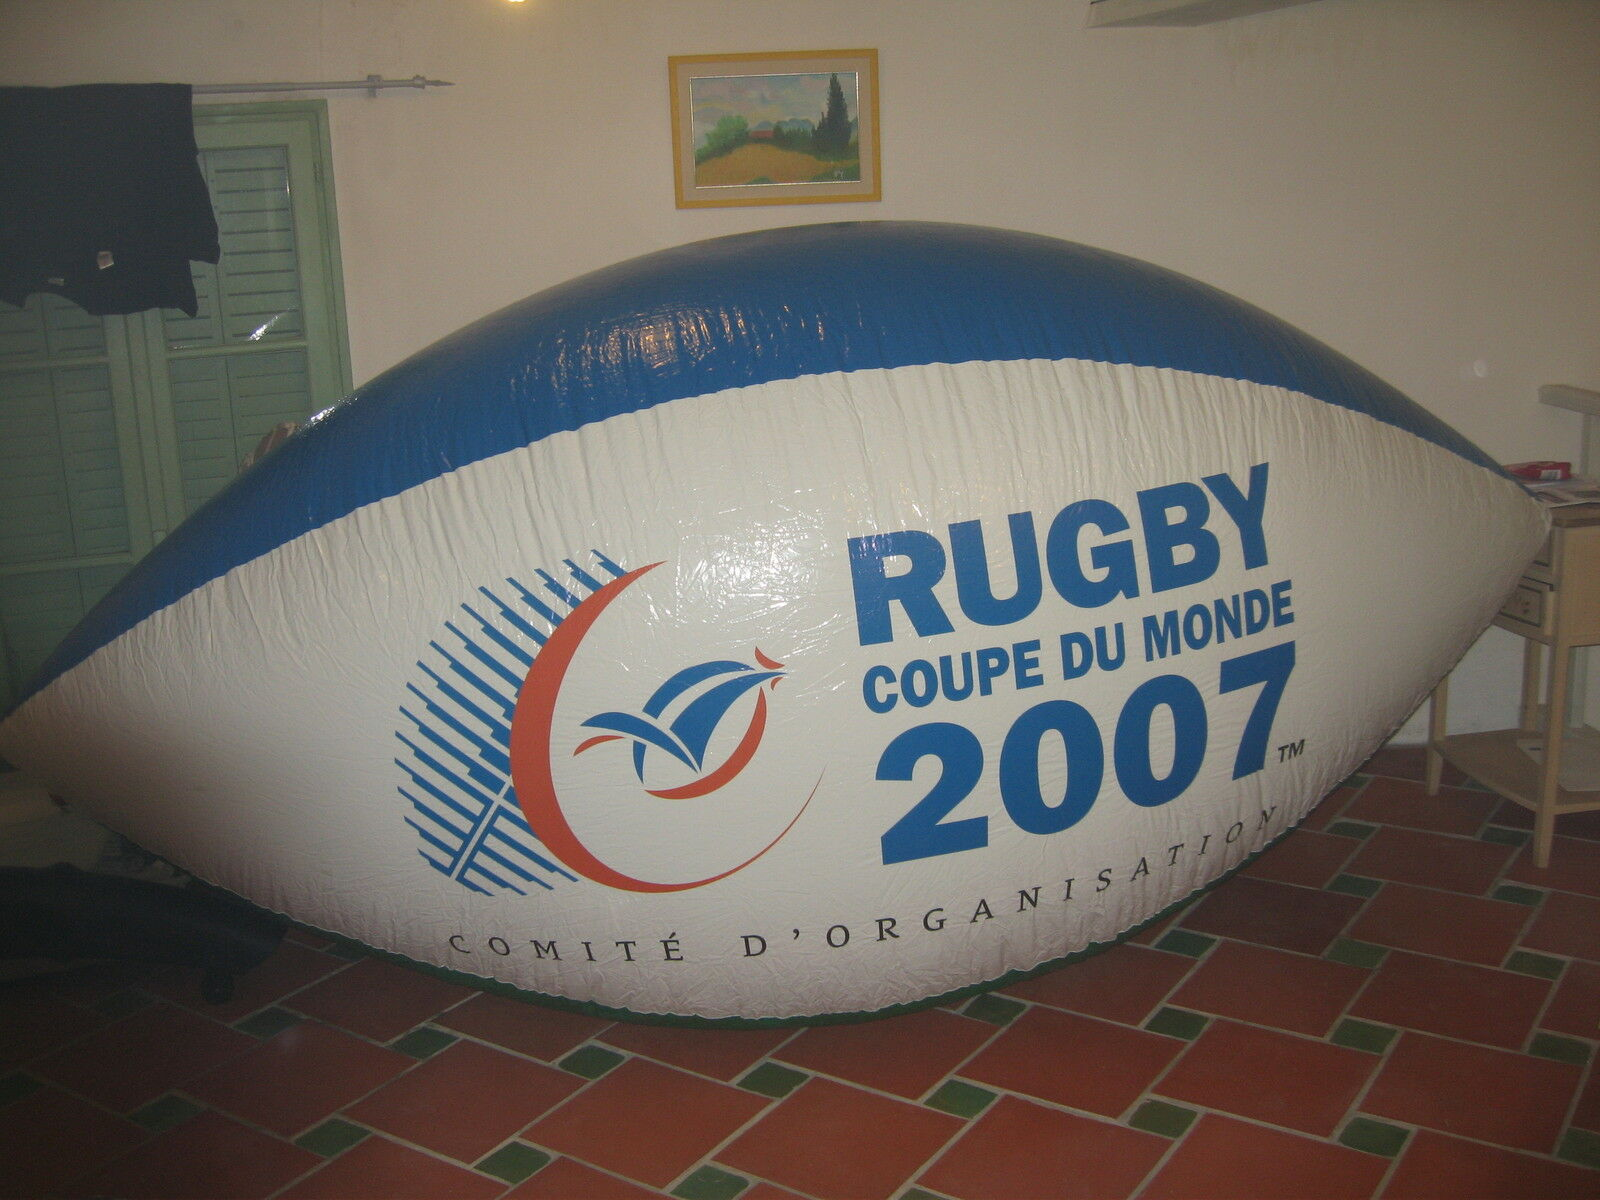 Ballon rugby 3 m long helium ou air coupe du monde 2007  world cup  balloon